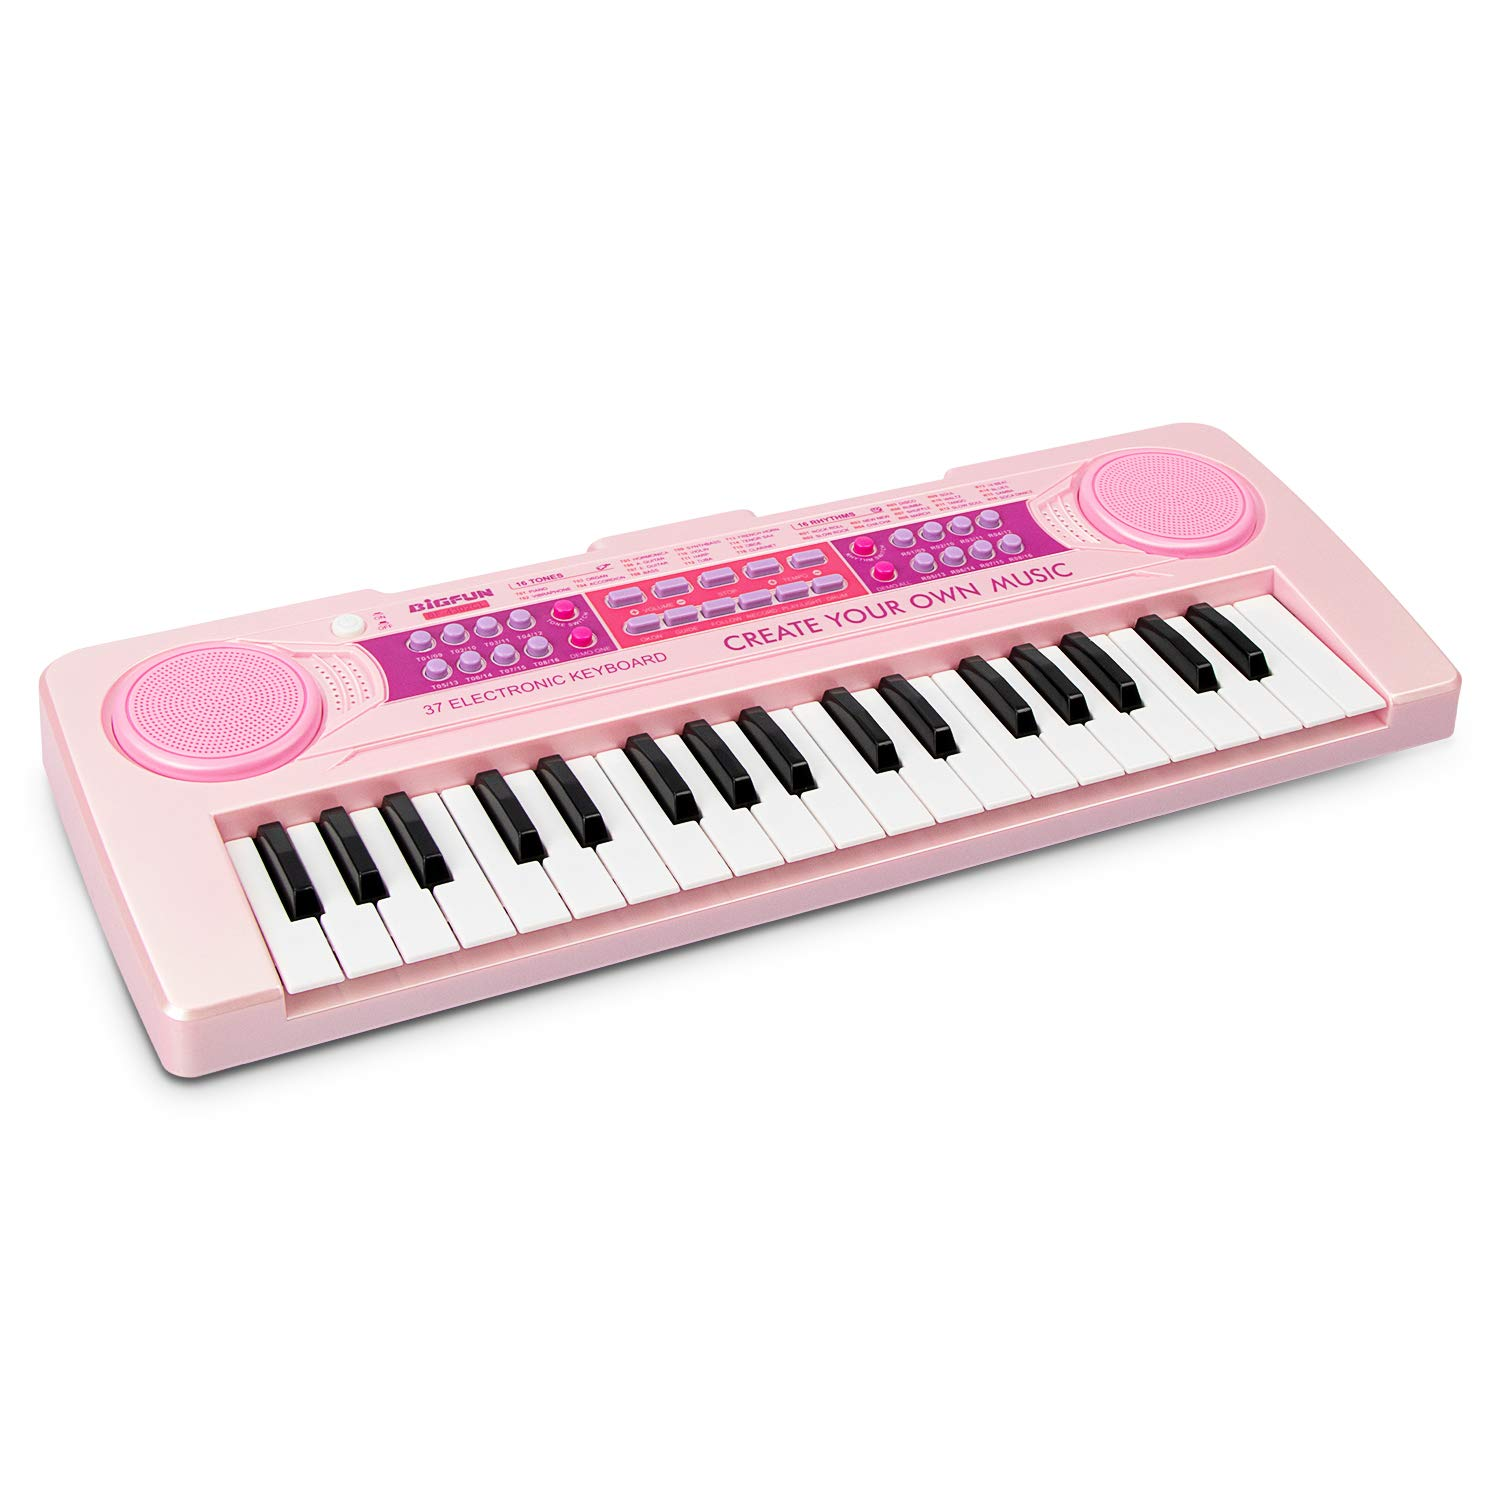 aPerfectLife 37 Keys Multi-Function Electronic Piano